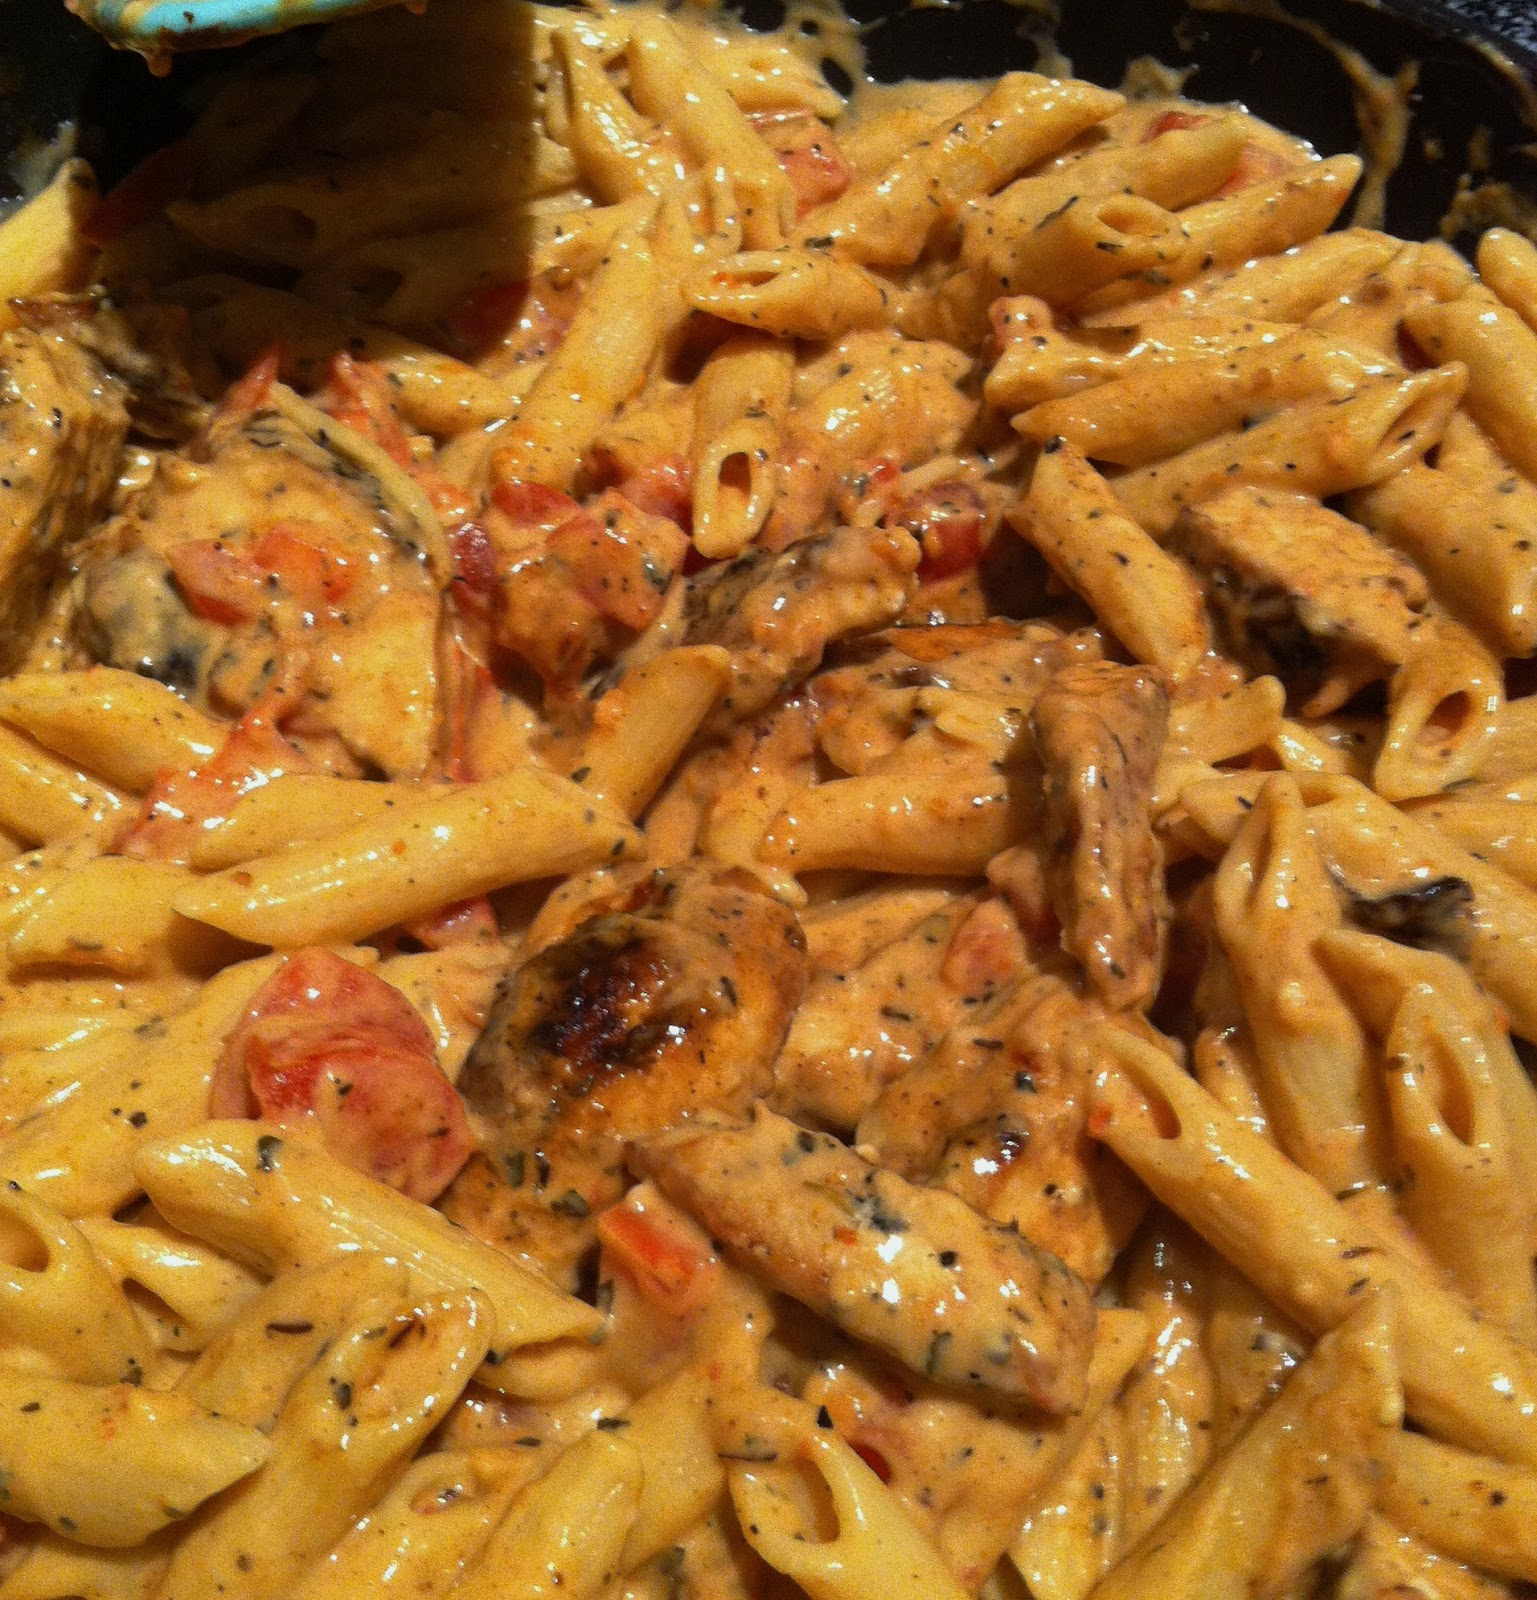 ... Baking: Penne with Blackened Chicken and Sun-Dried Tomato Basil Sauce